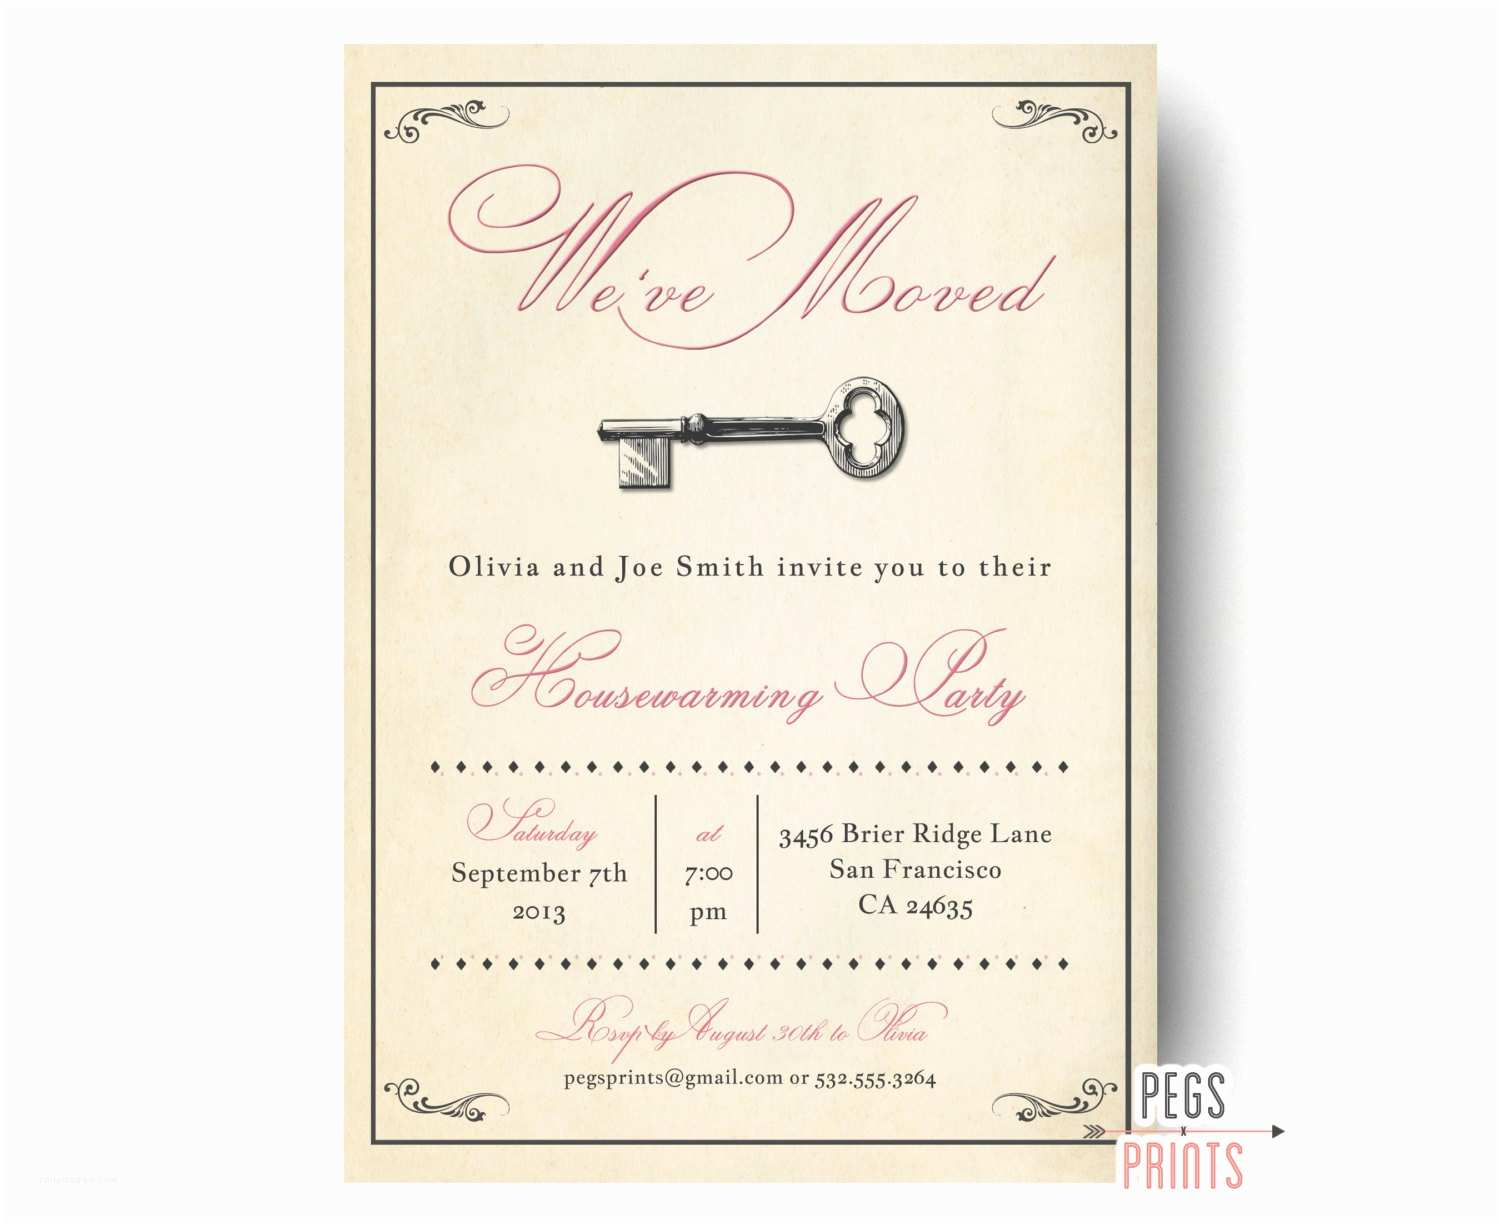 /housewarming/housewarming Invitations Vintage Housewarming Party Invitation Rustic House Warming